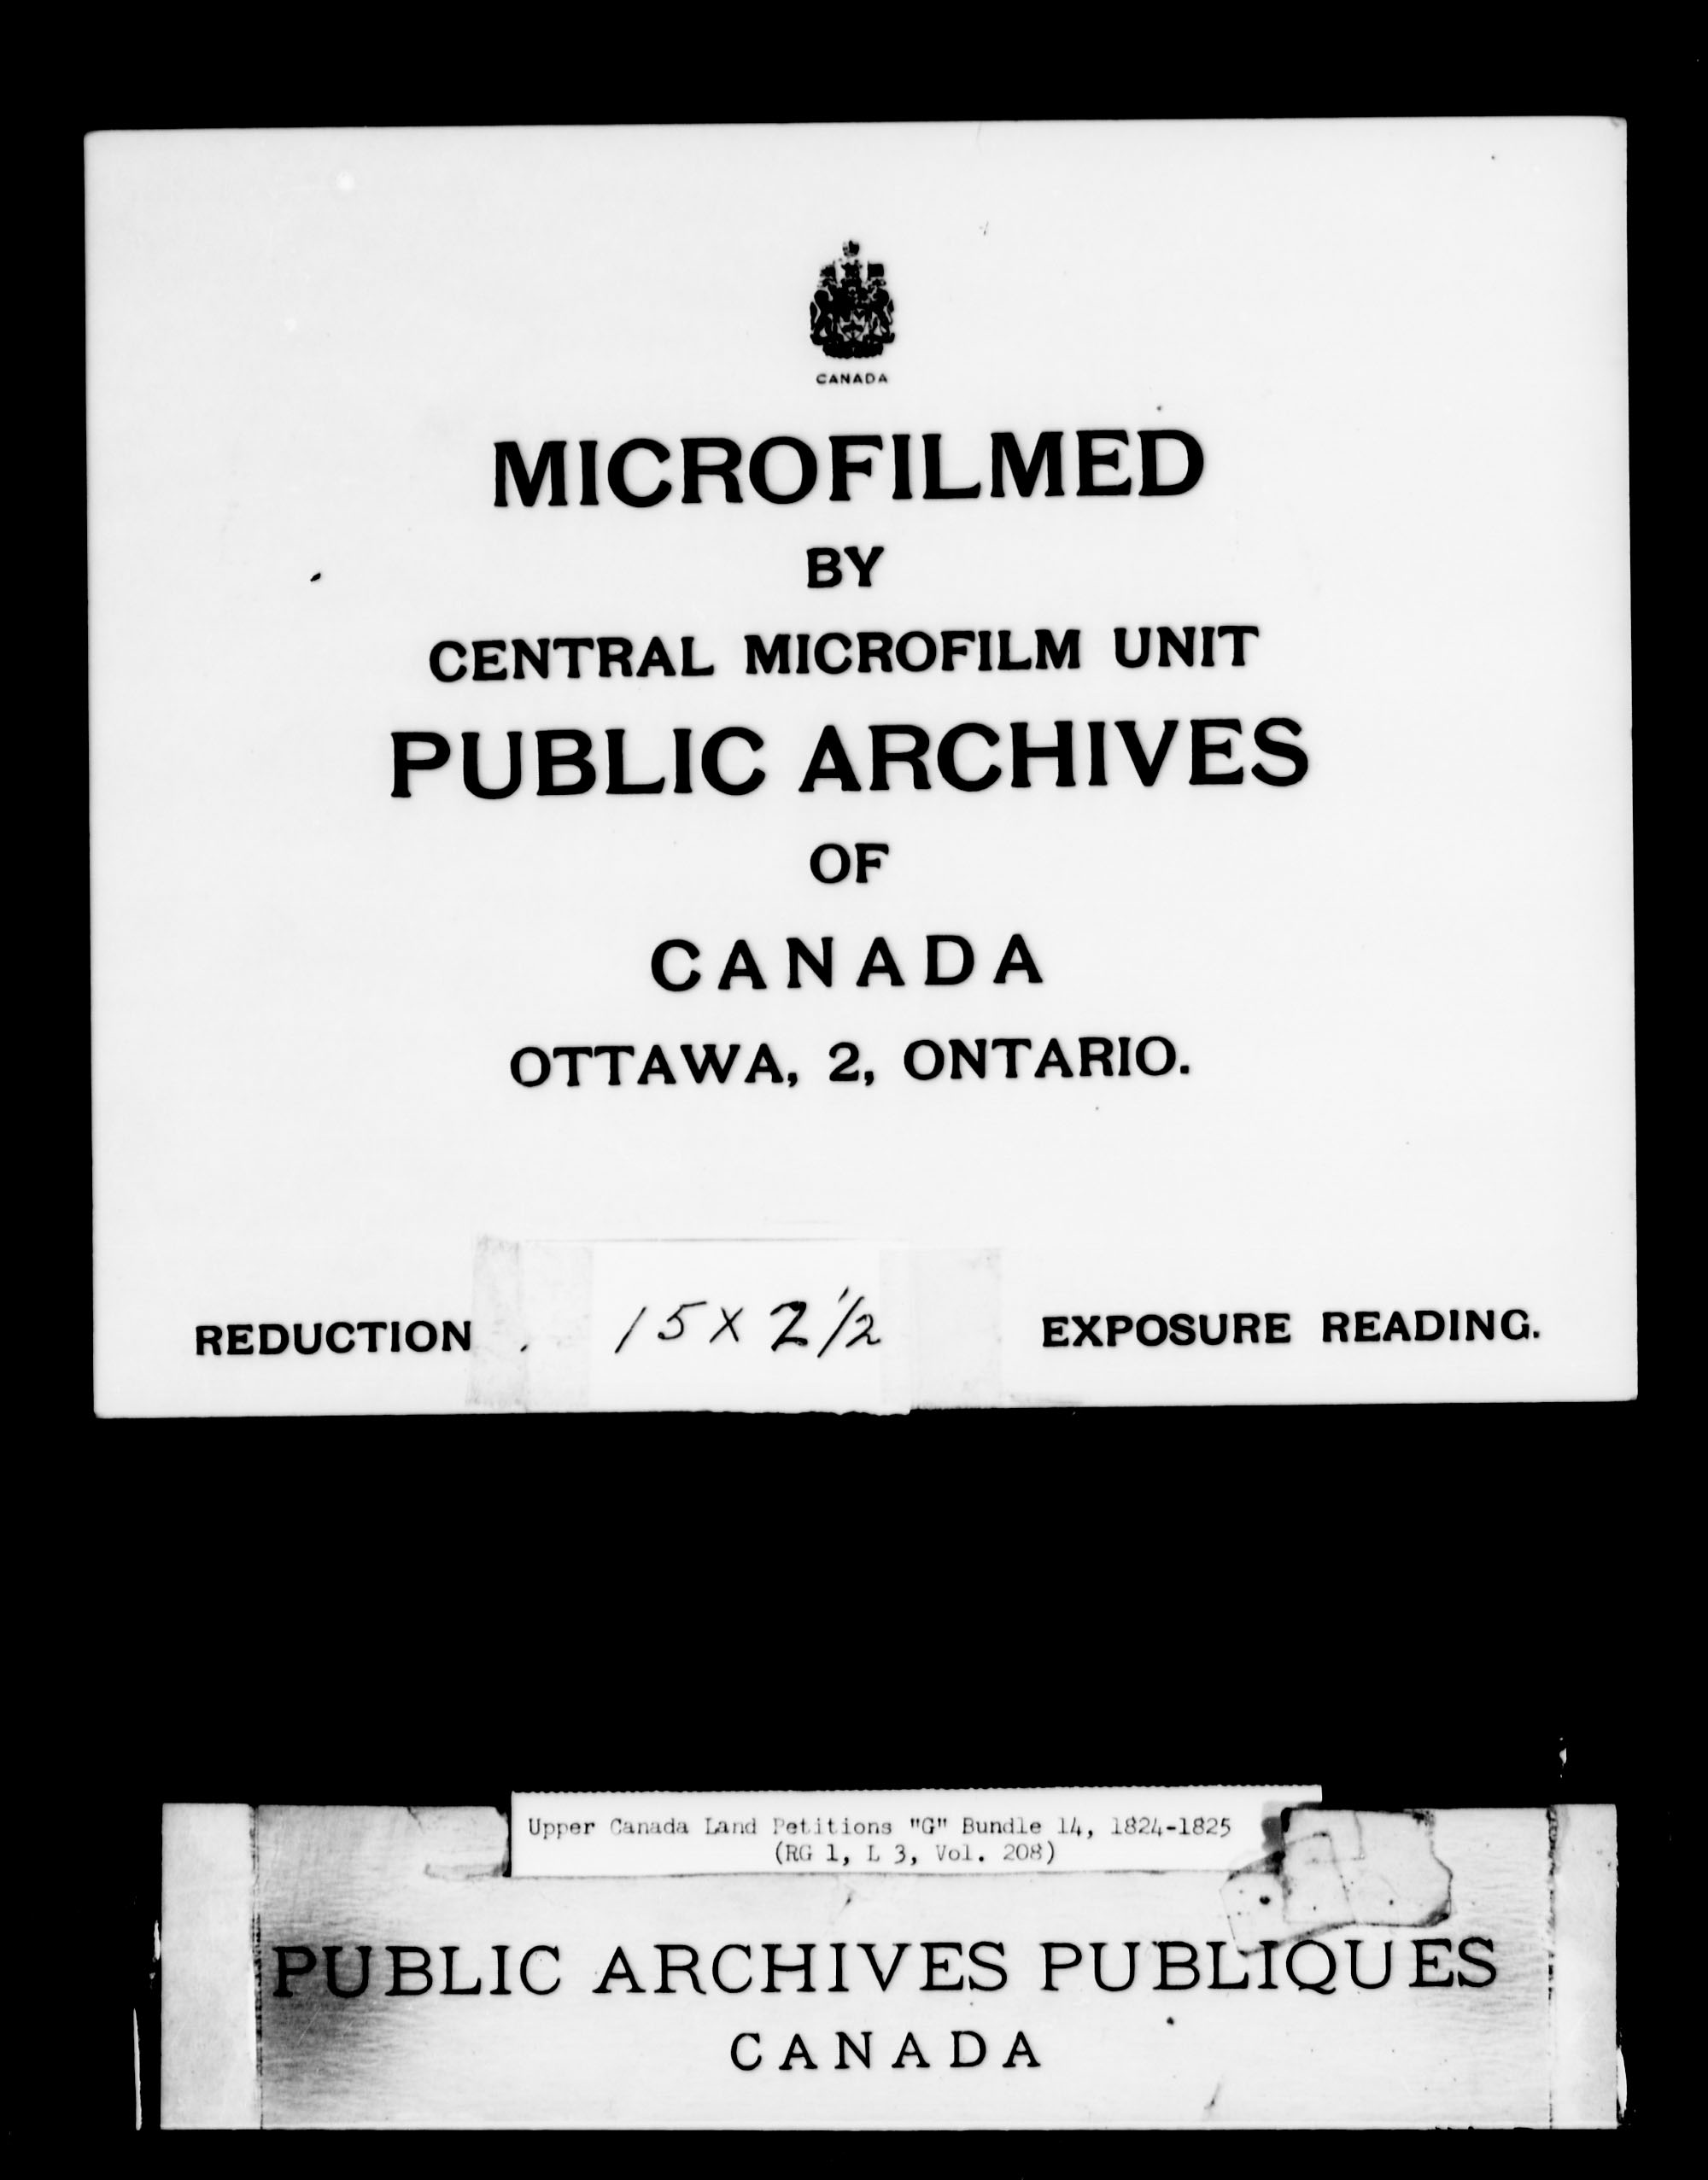 Title: Upper Canada Land Petitions (1763-1865) - Mikan Number: 205131 - Microform: c-2032